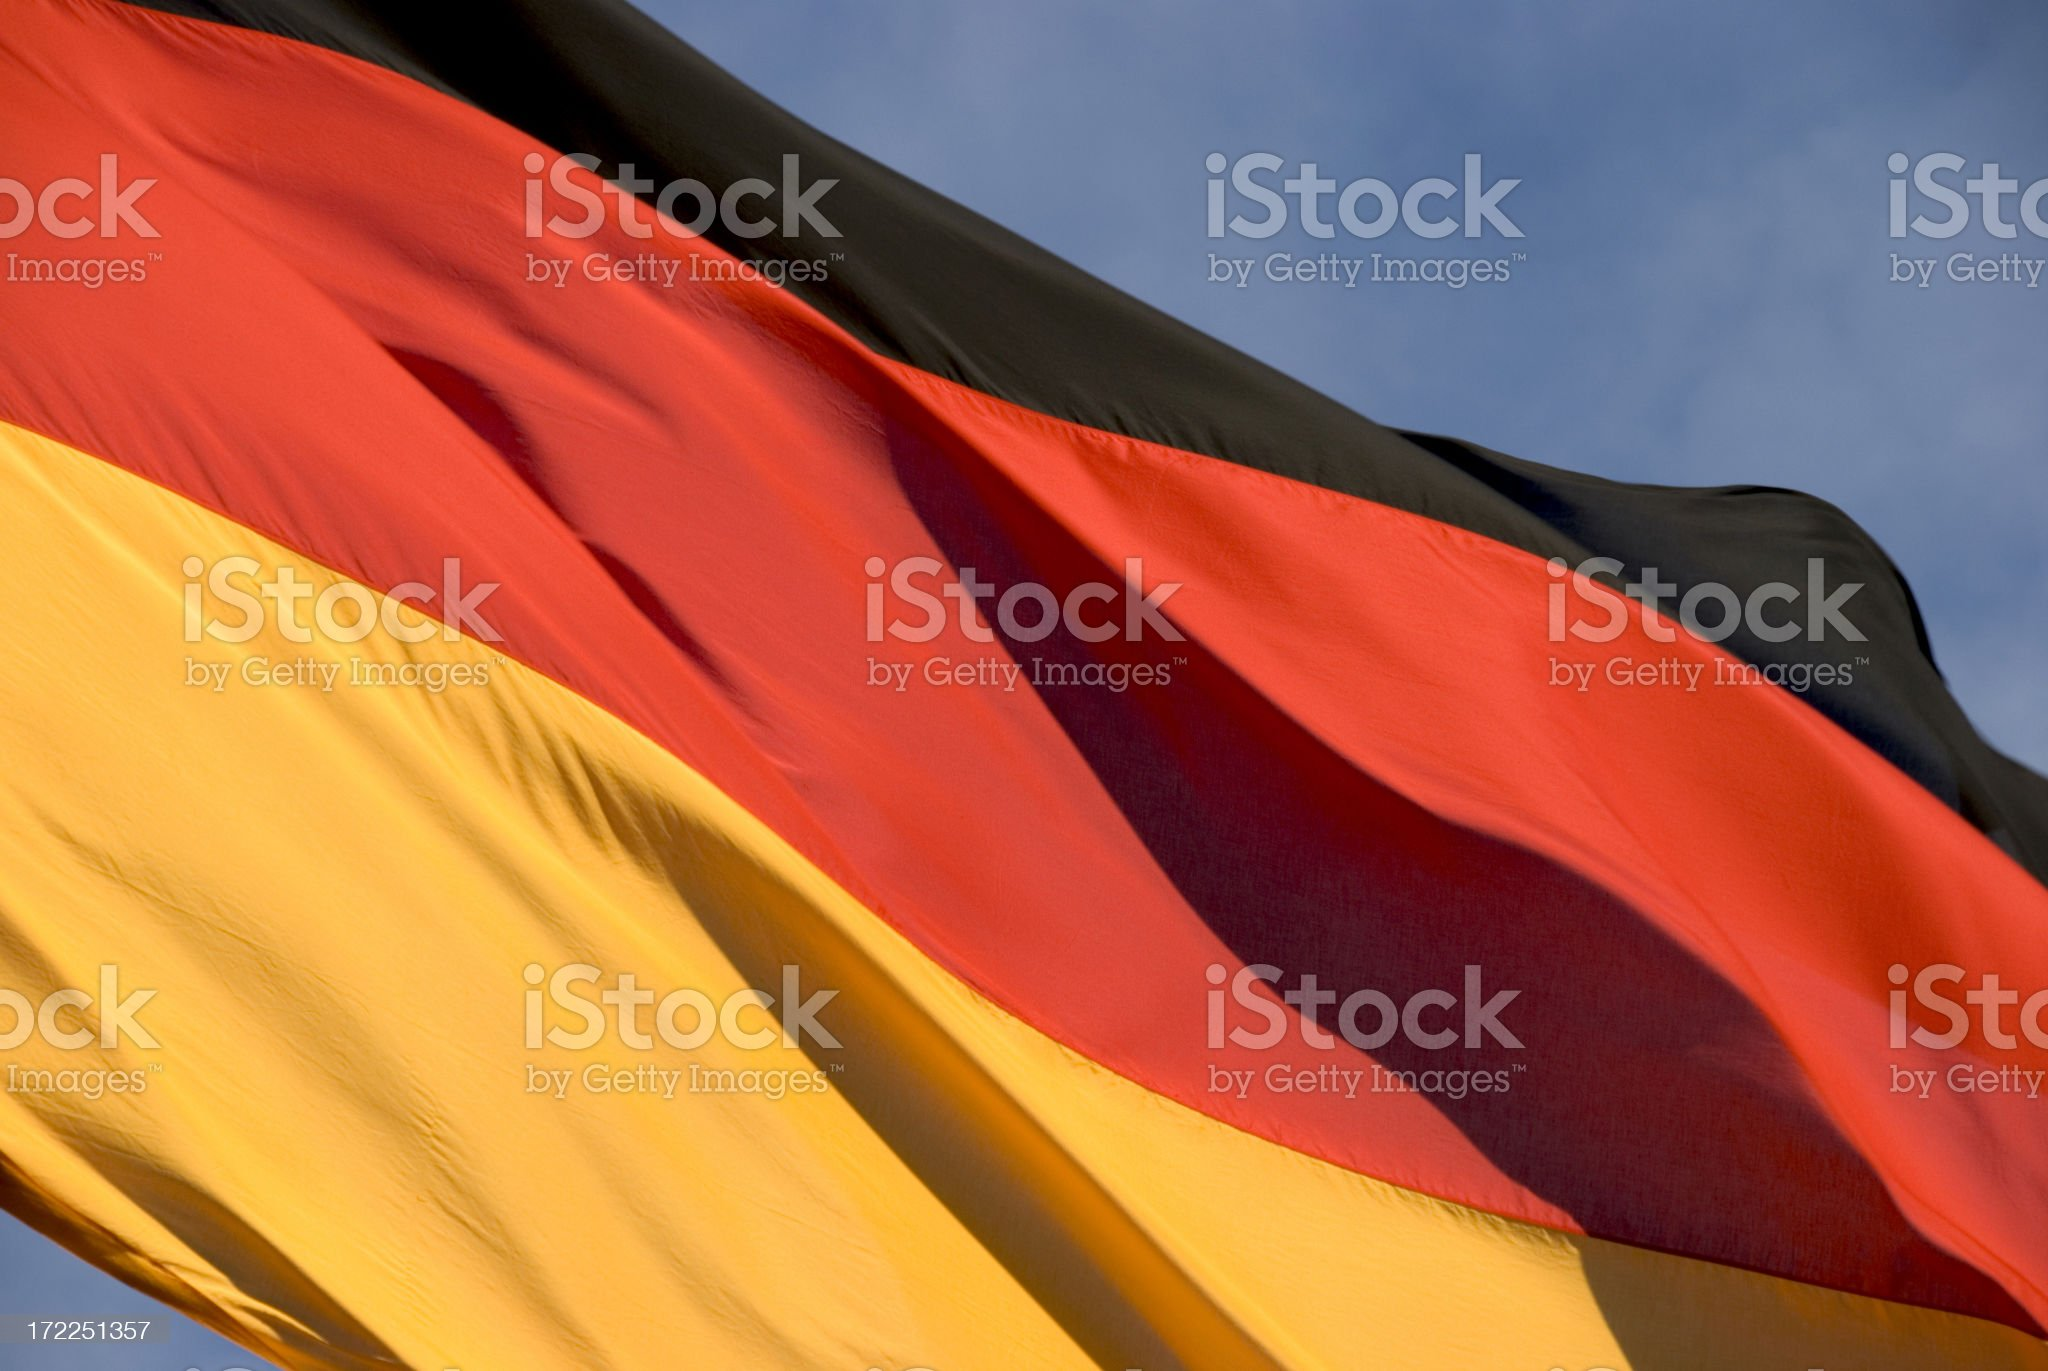 black, red, gold royalty-free stock photo